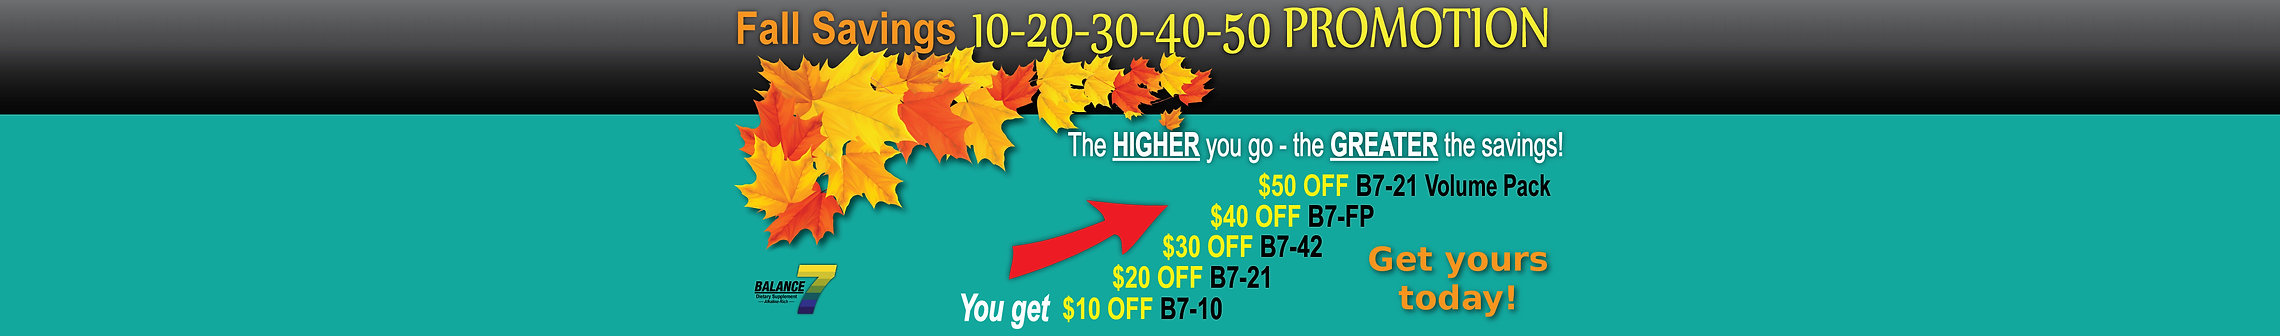 Fall Promo Banner - Sale Page - FINAL 10